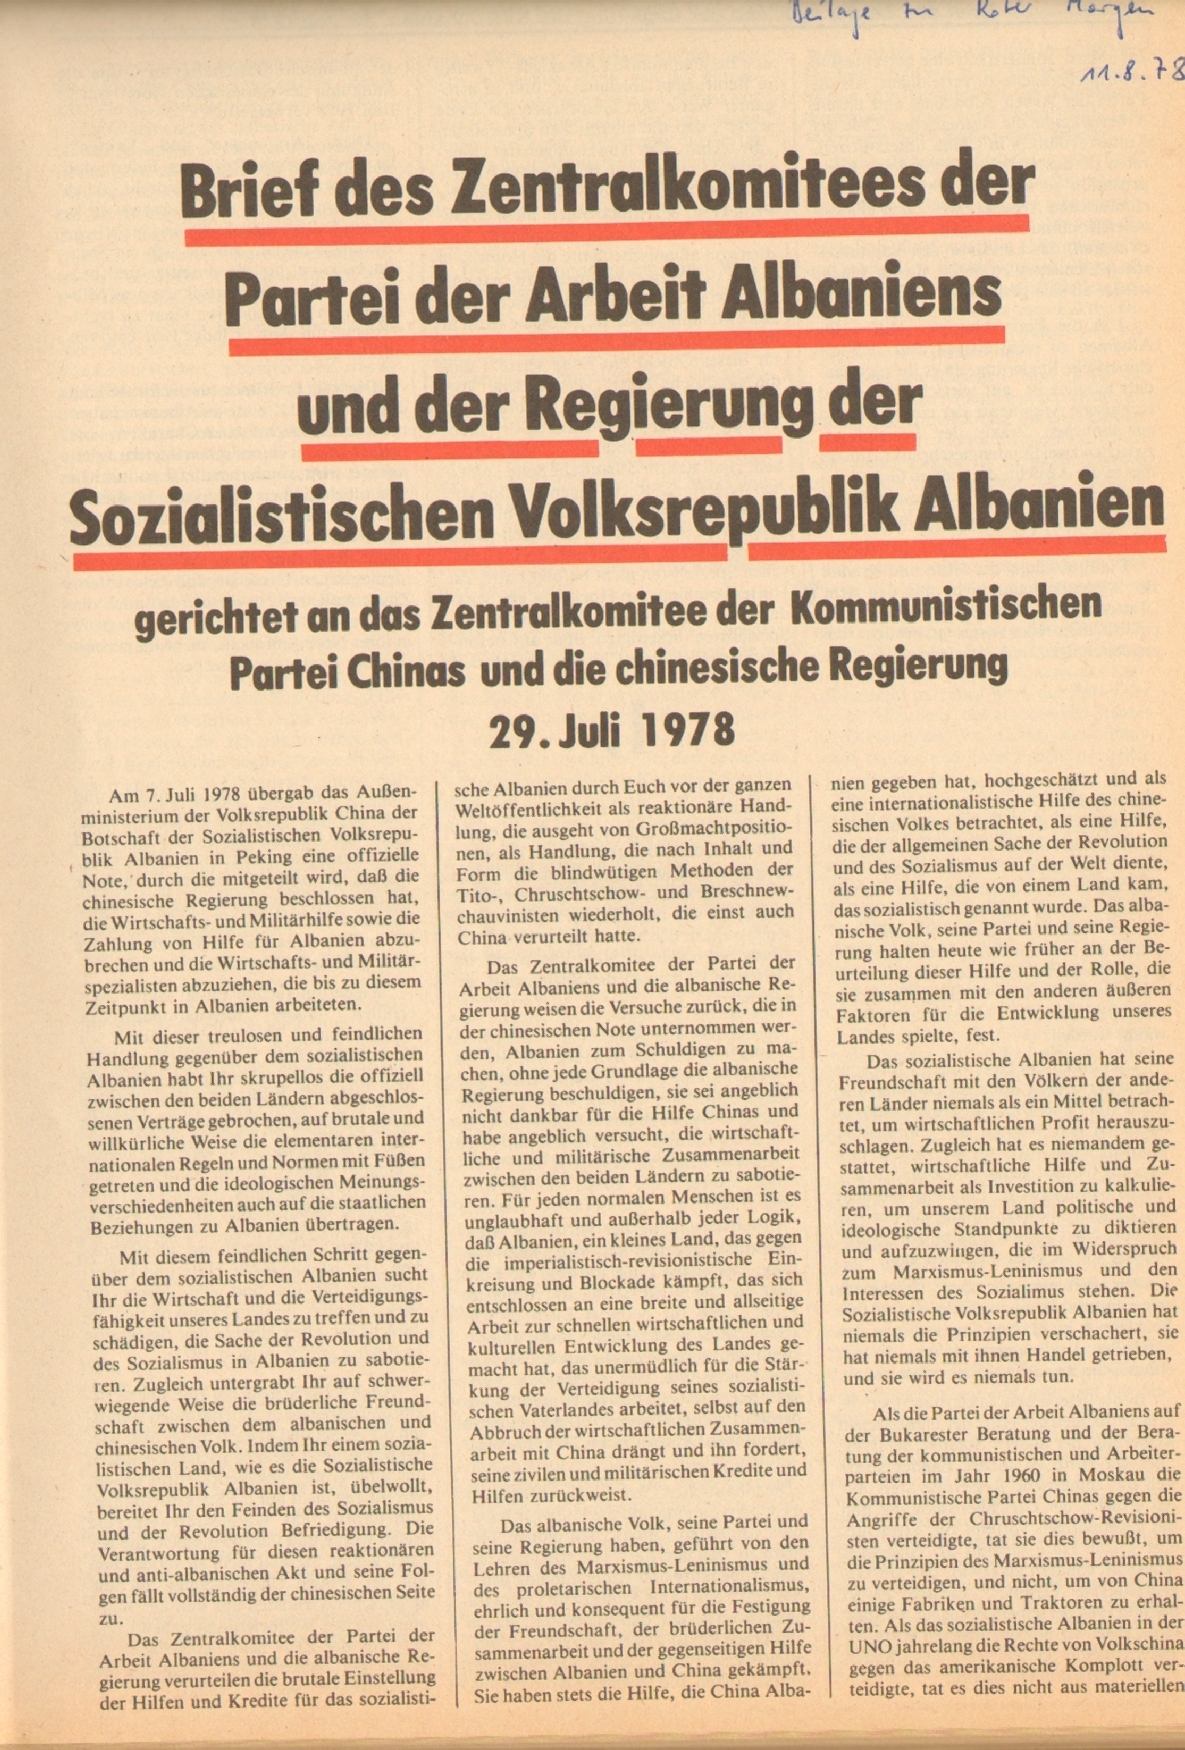 Roter Morgen, 12. Jg., 11. August 1978, Nr. 32, Beilage, Seite 1